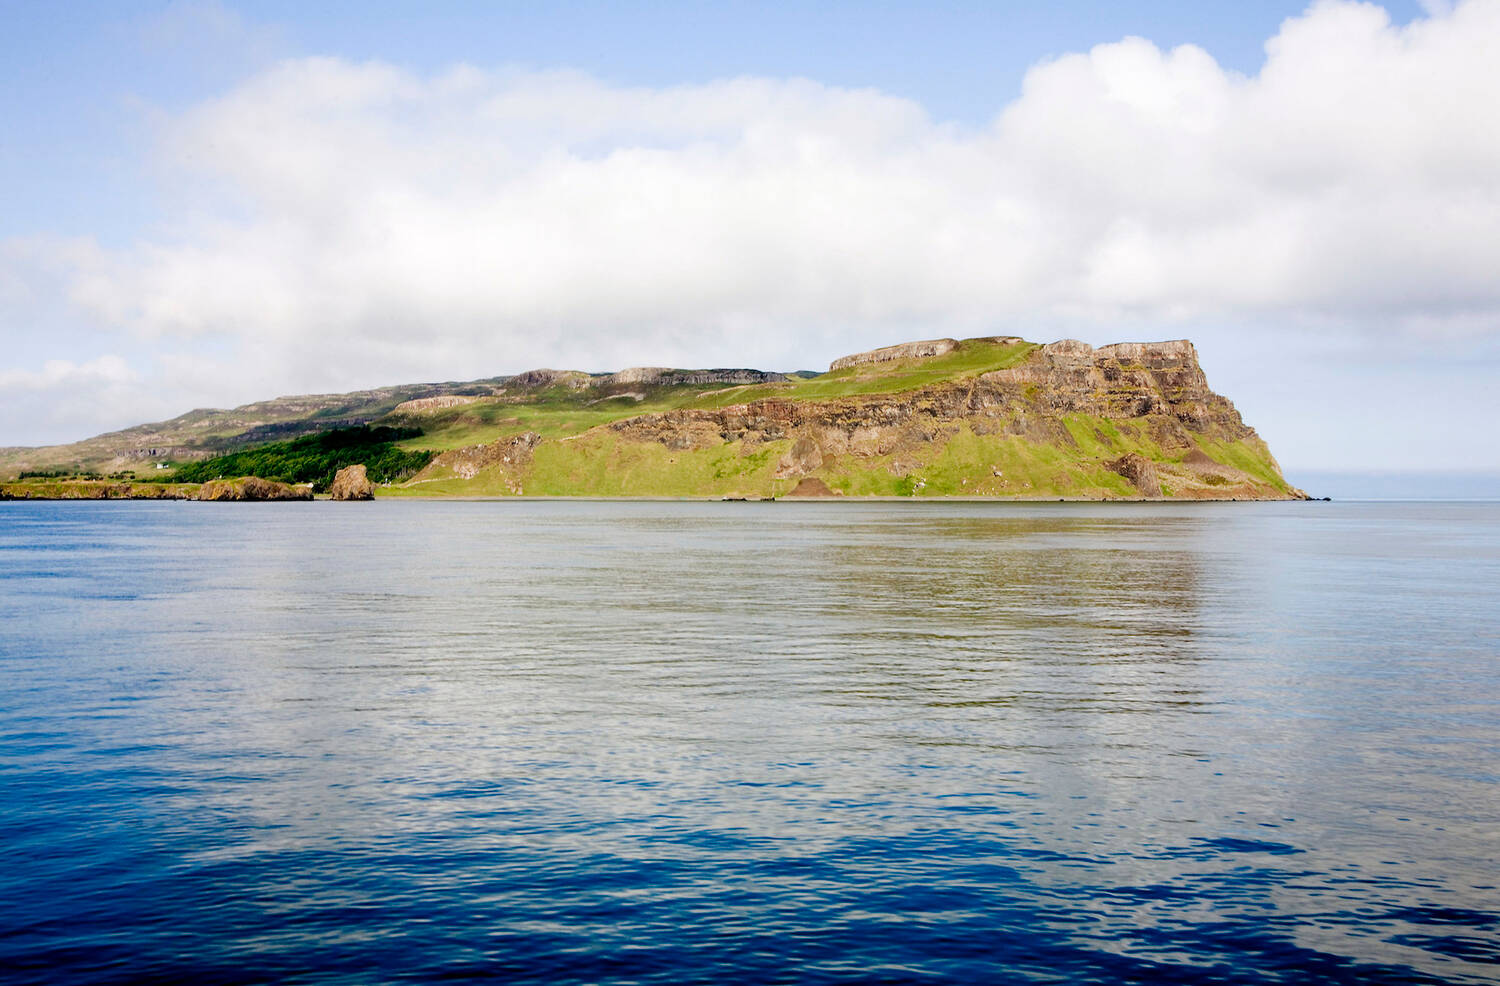 Canna seen from the sea on a calm sunny day. The island is reflected in the smooth water.